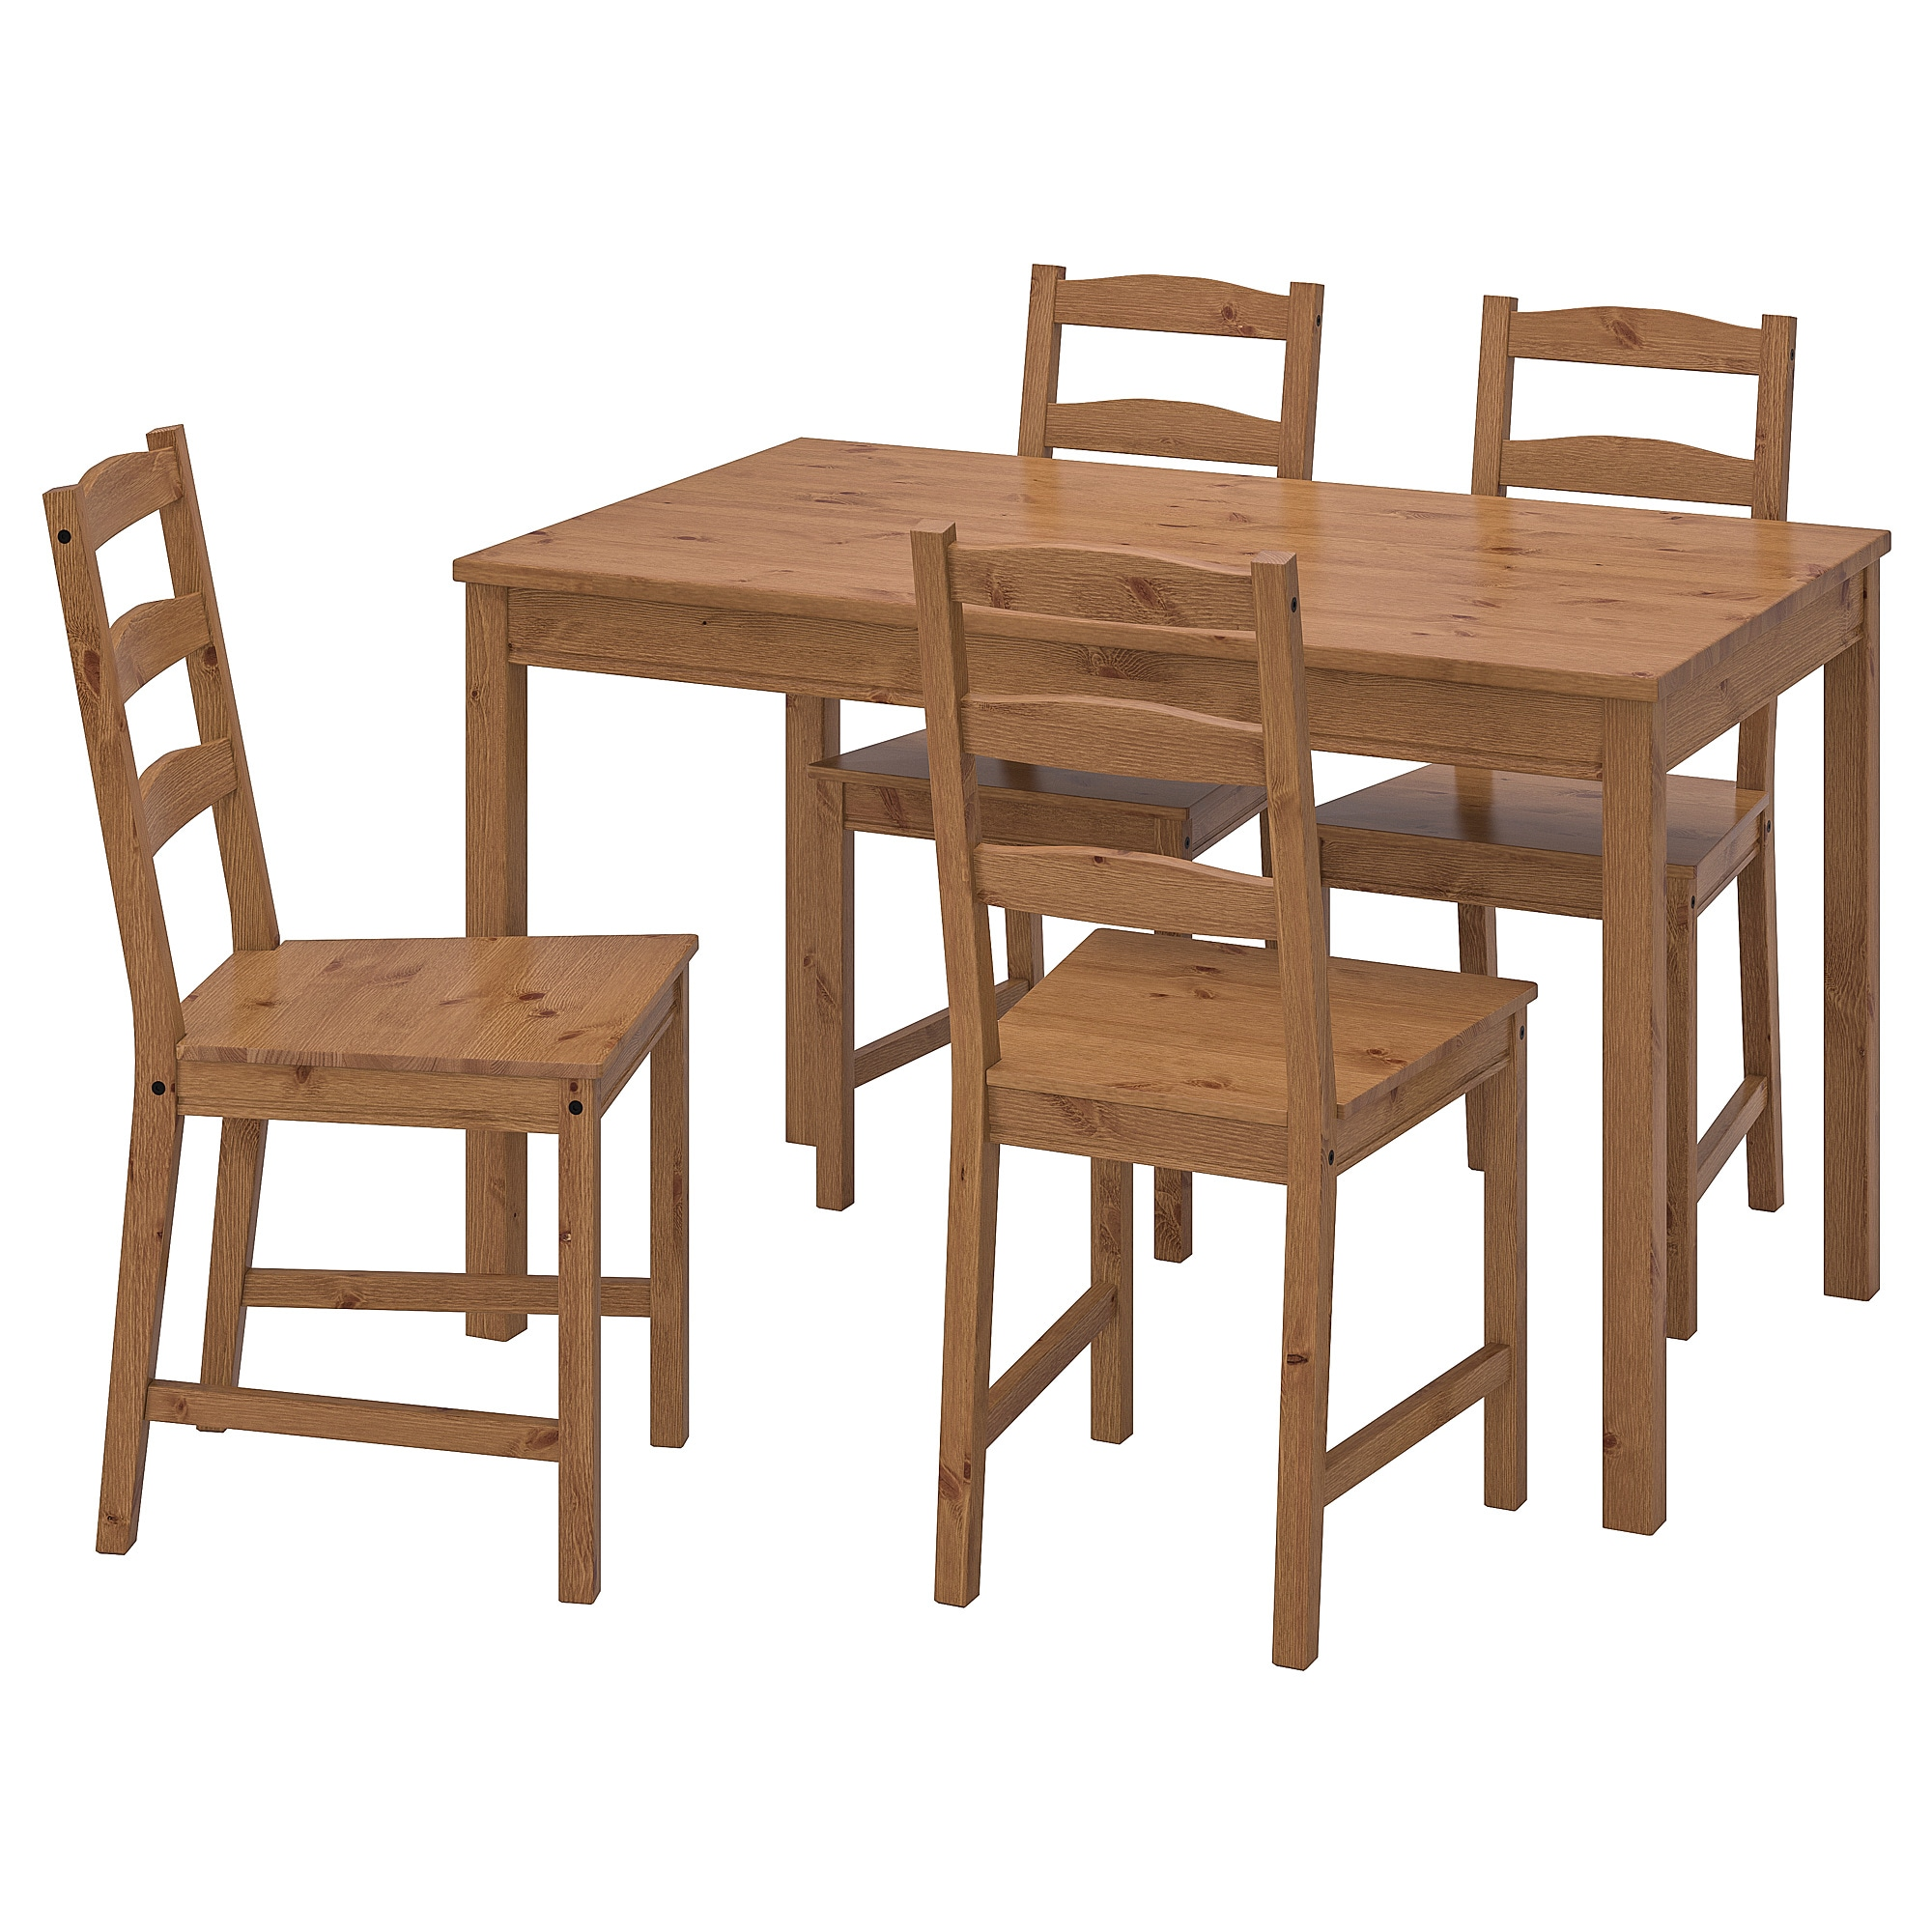 Fresh Kitchen Ikea Kitchen Table And Chairs Set With: JOKKMOKK Table And 4 Chairs